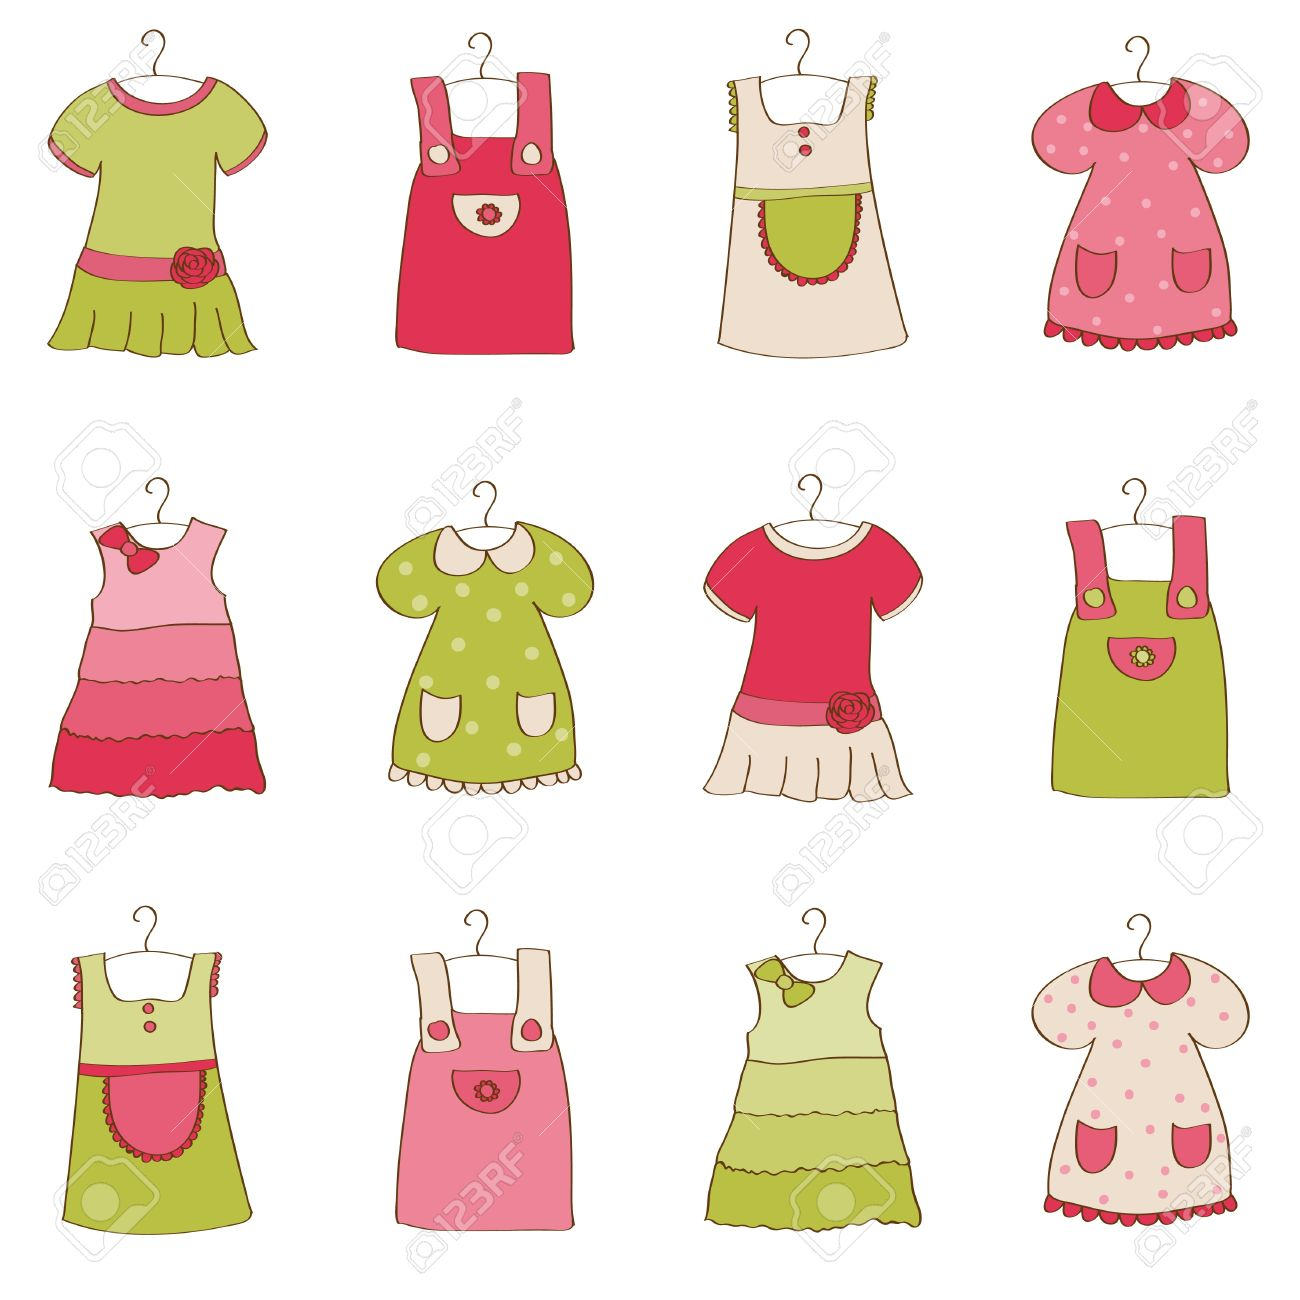 baby girl dress collection stock vector 10136946 baby girl dress designs